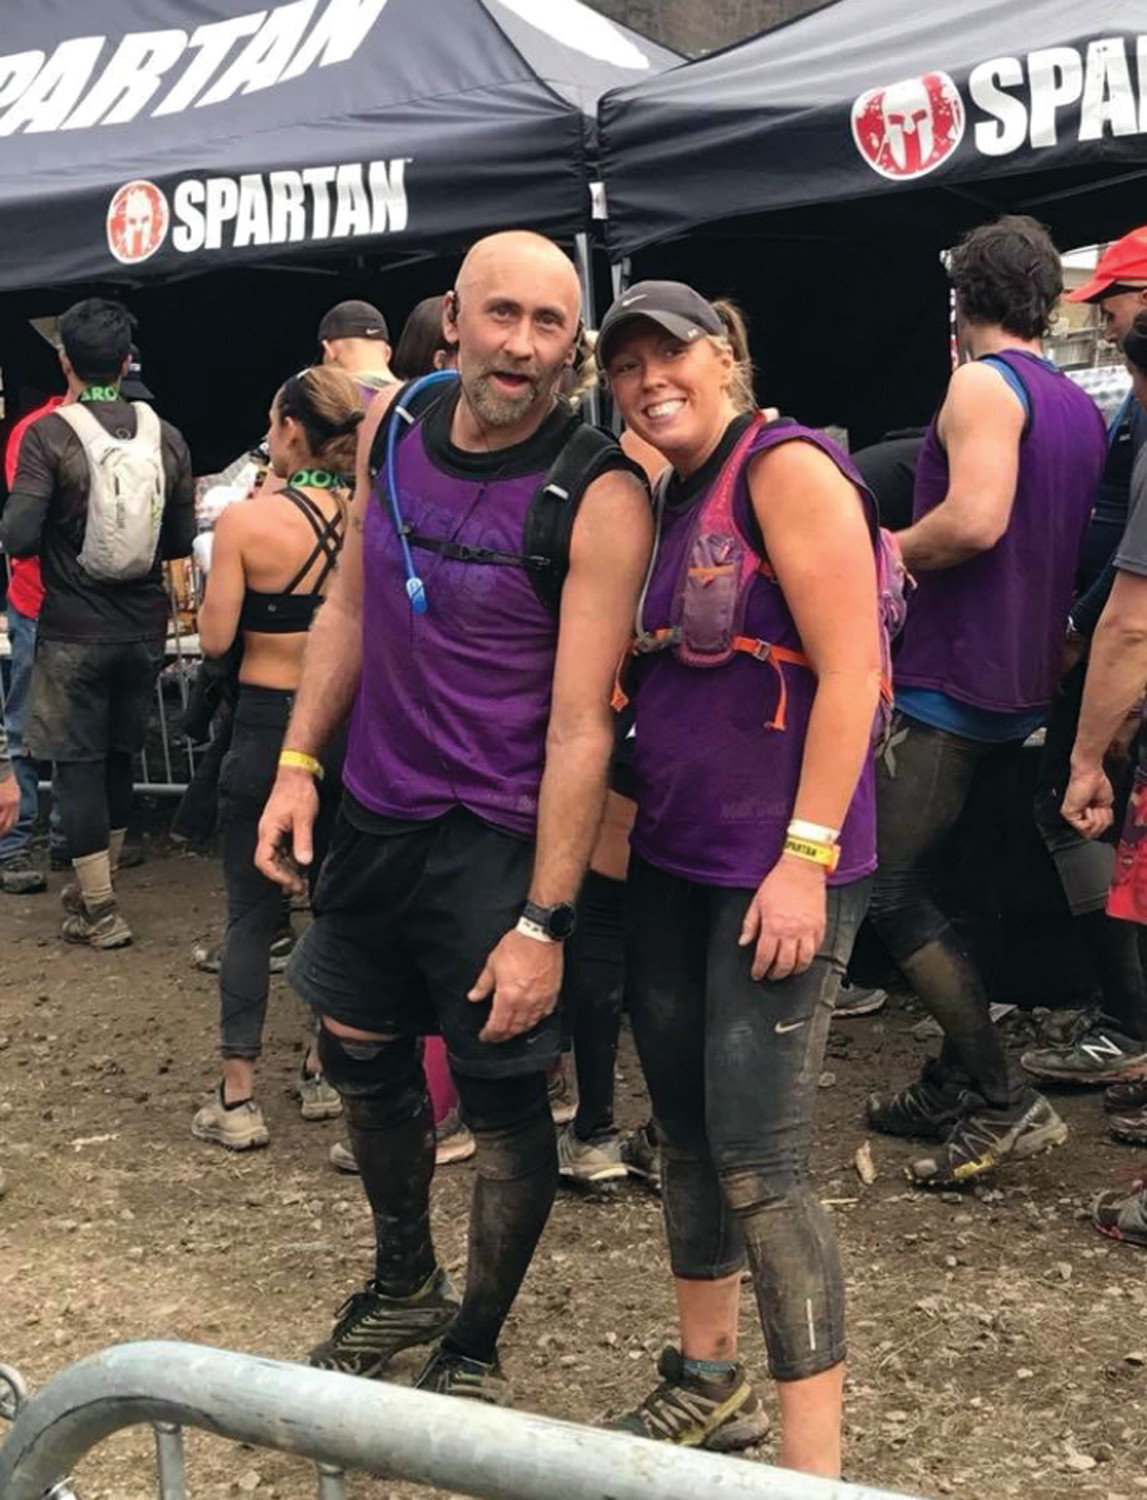 RACE TO THE FINISH: Warwick's Heather Sischo after competing in the Spartan Ultra Beast in April. Sischo qualified for the Ultra Beast World Championships in Iceland.